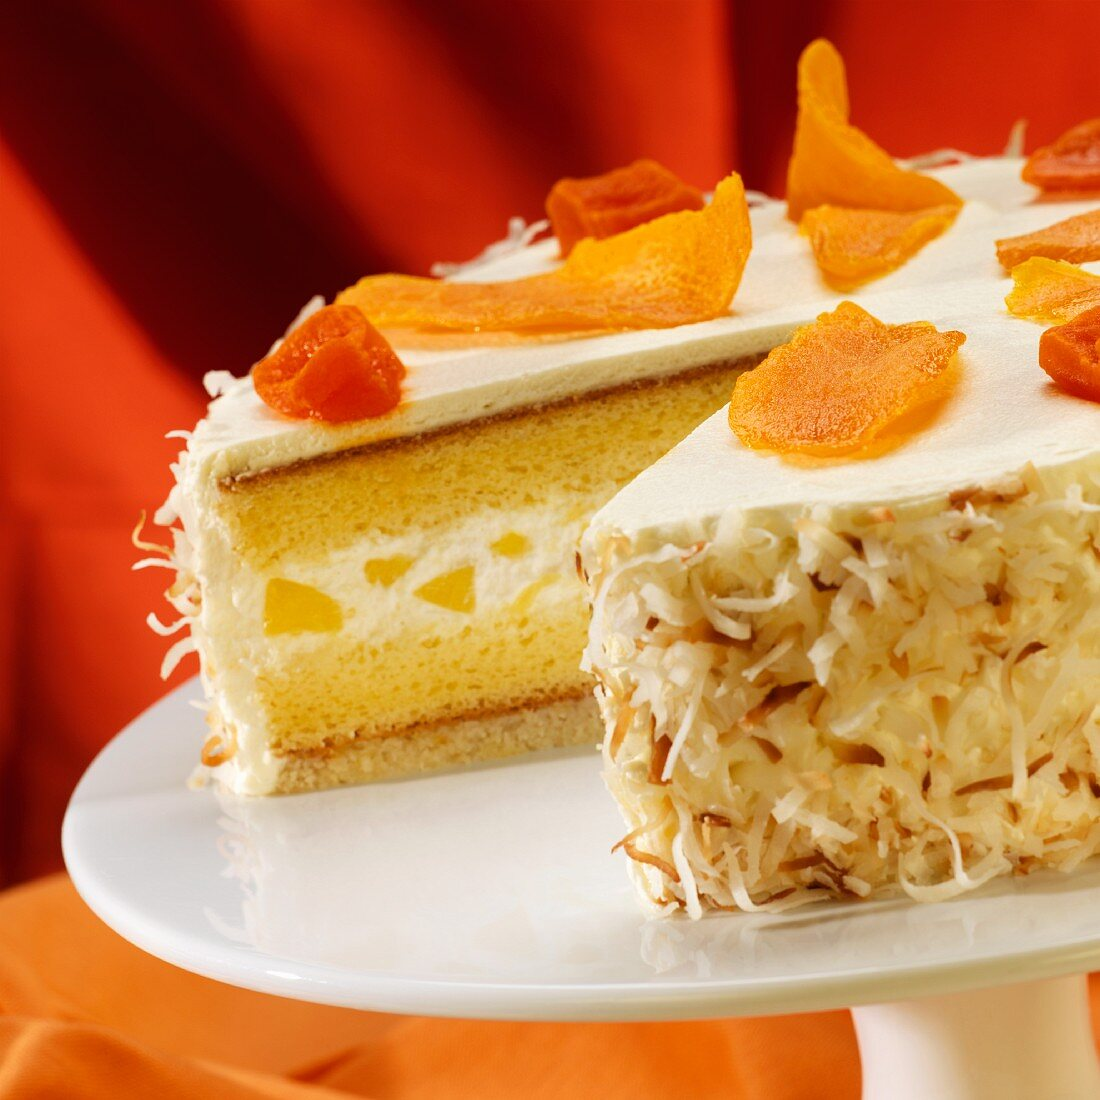 Pineapple Cream Cake Topped with Dried Mango and Papaya with Toasted Coconut; Slice Removed